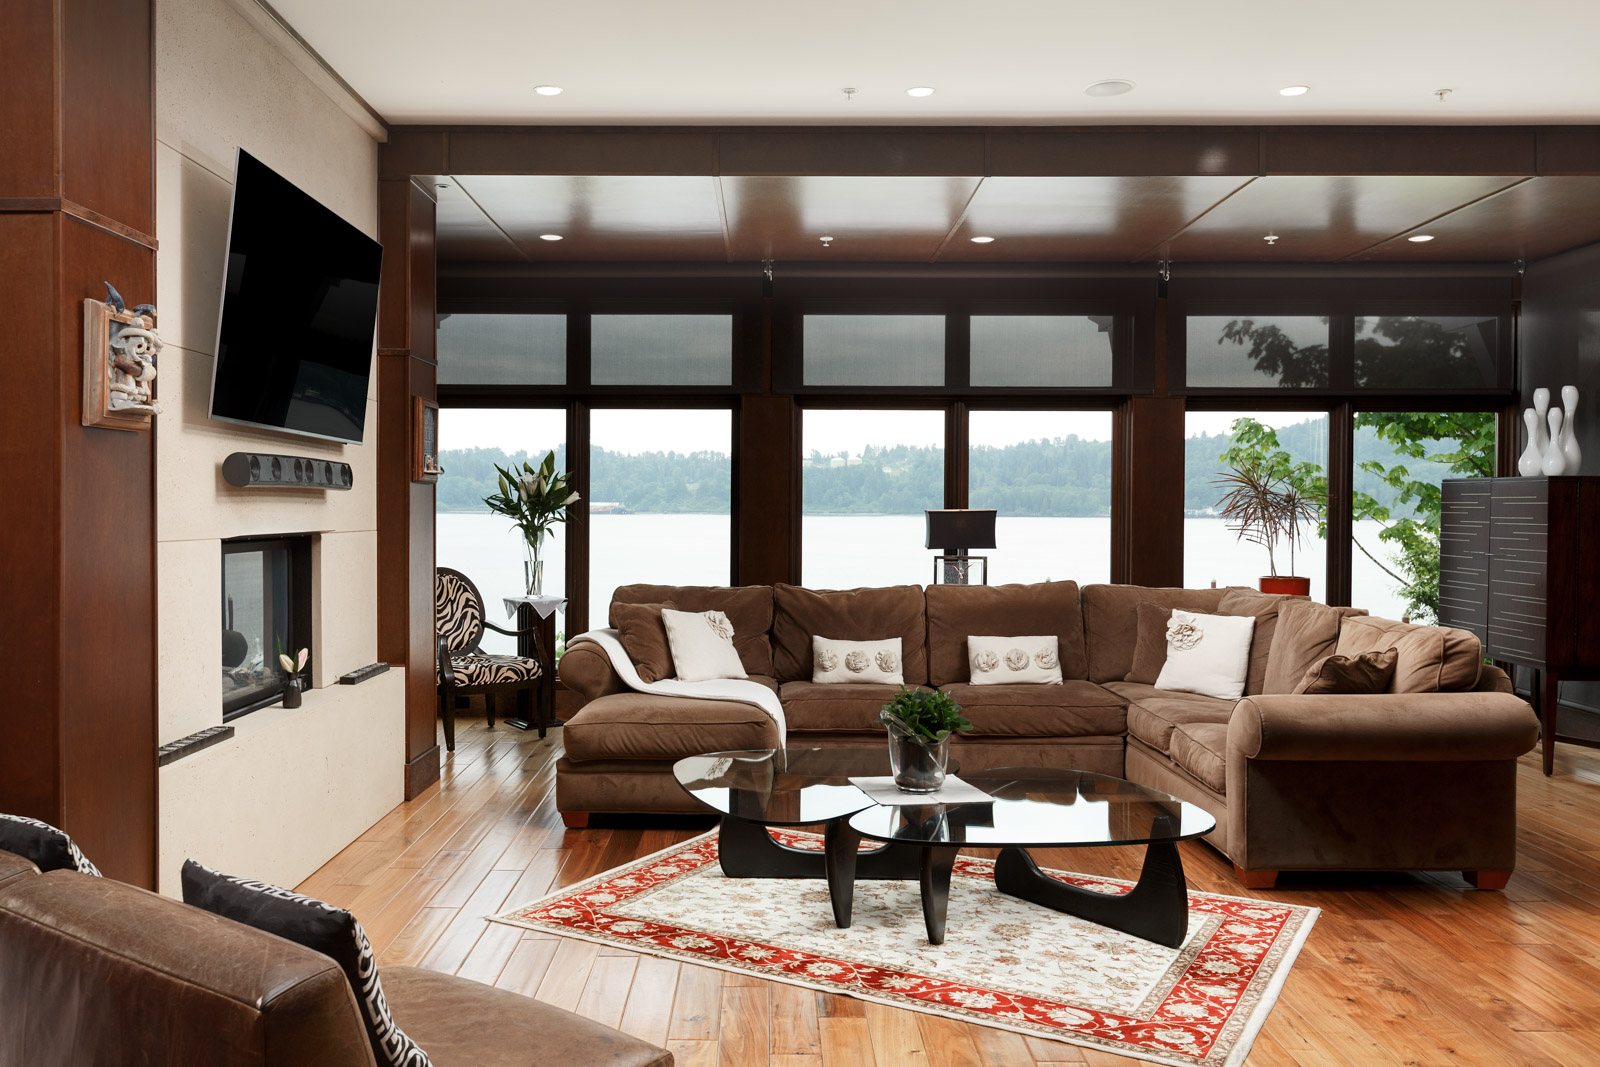 Living room inside luxury rental located in Vancouver's North Shore.